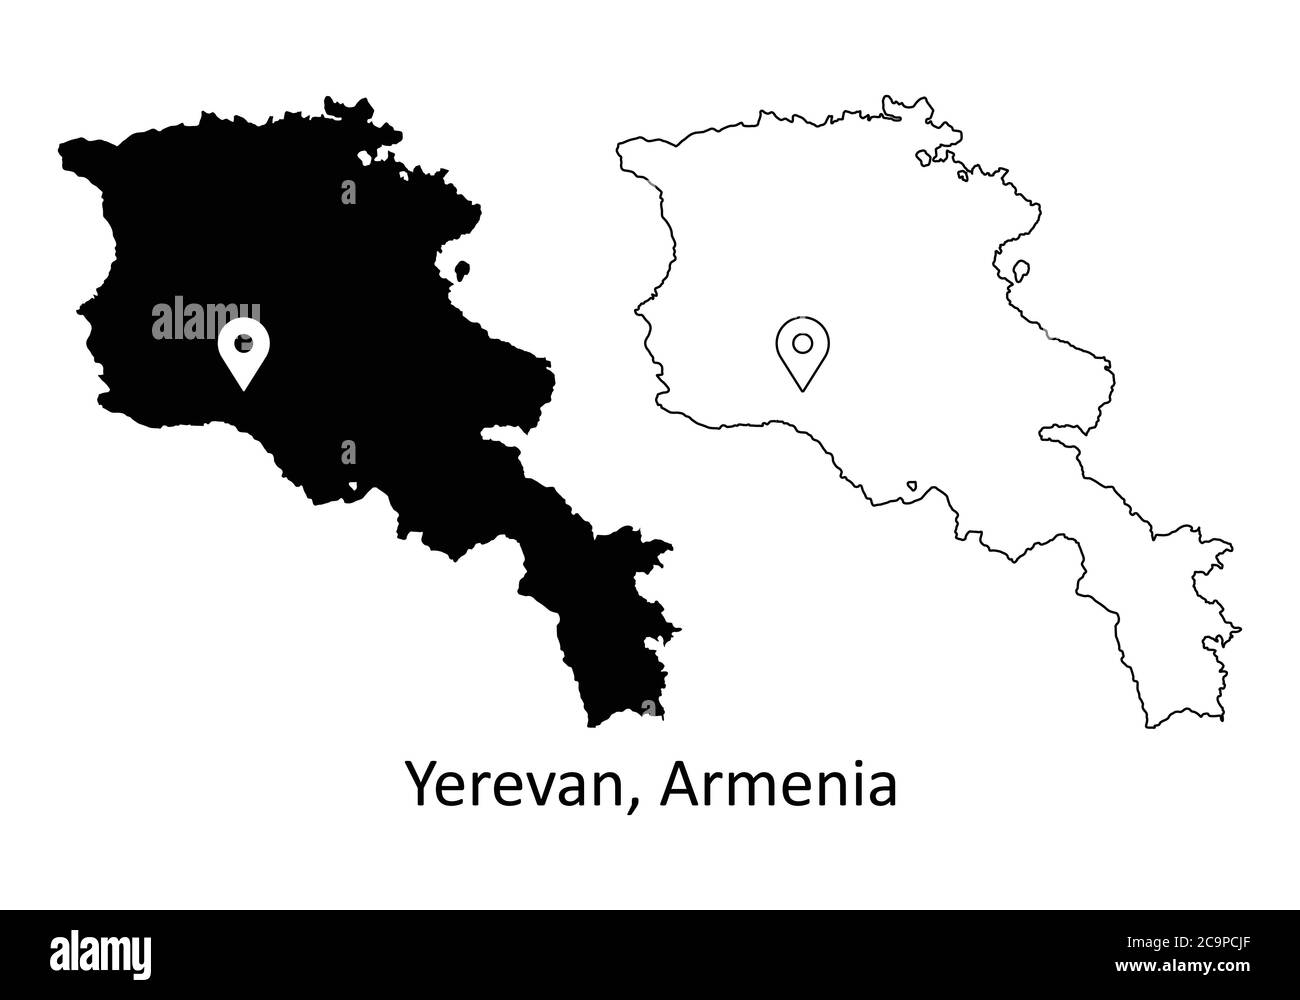 Picture of: Yerevan Armenia Detailed Country Map With Capital City Location Pin Black Silhouette And Outline Maps Isolated On White Background Eps Vector Stock Vector Image Art Alamy